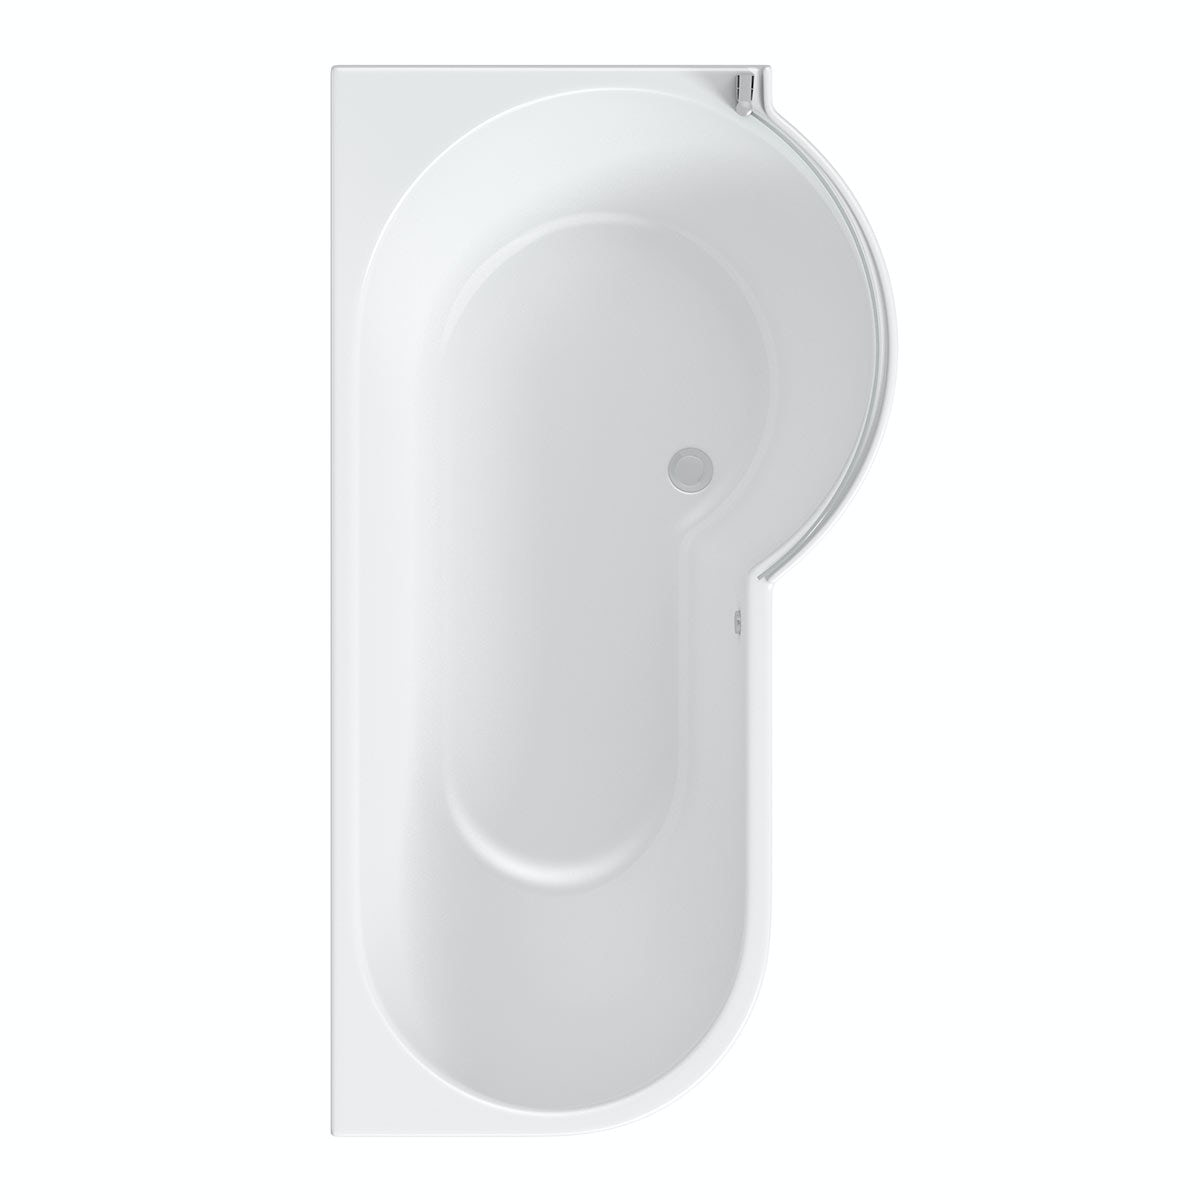 mode maine right handed p shaped shower bath and shower compare shower baths p and l shaped shower baths